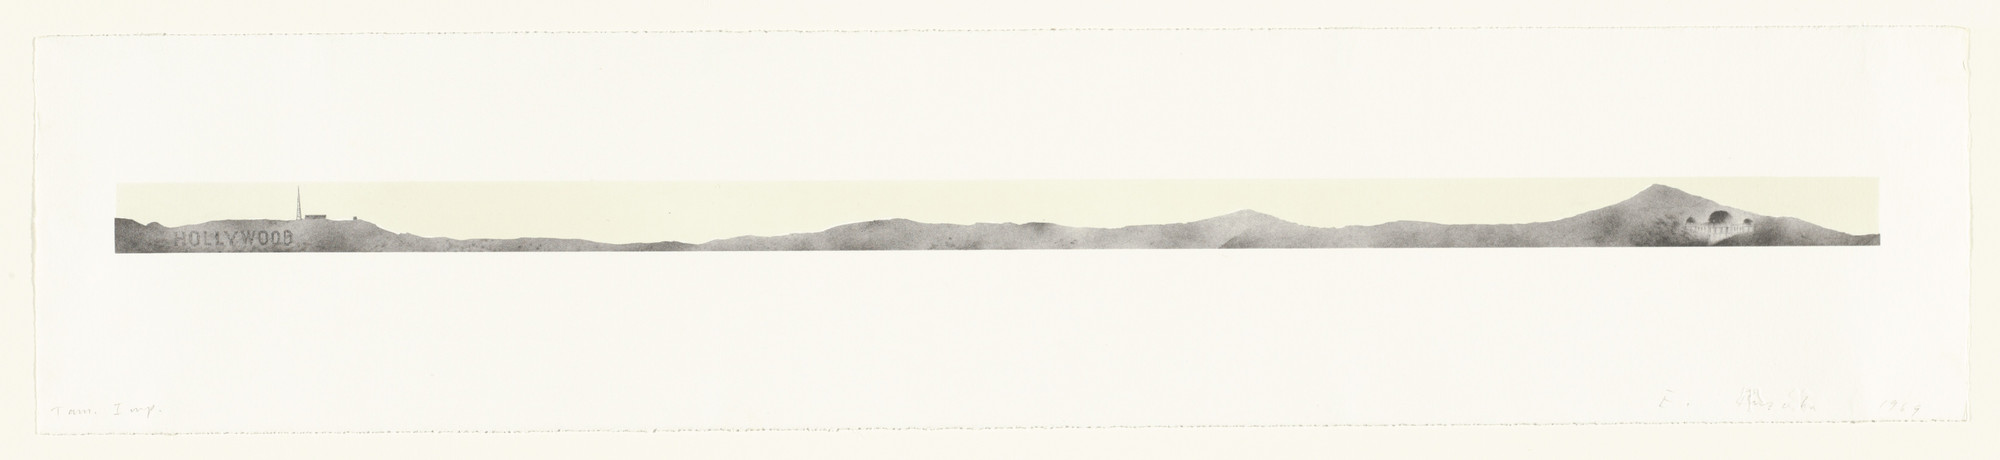 Edward Ruscha. Hollywood with Observatory. 1969